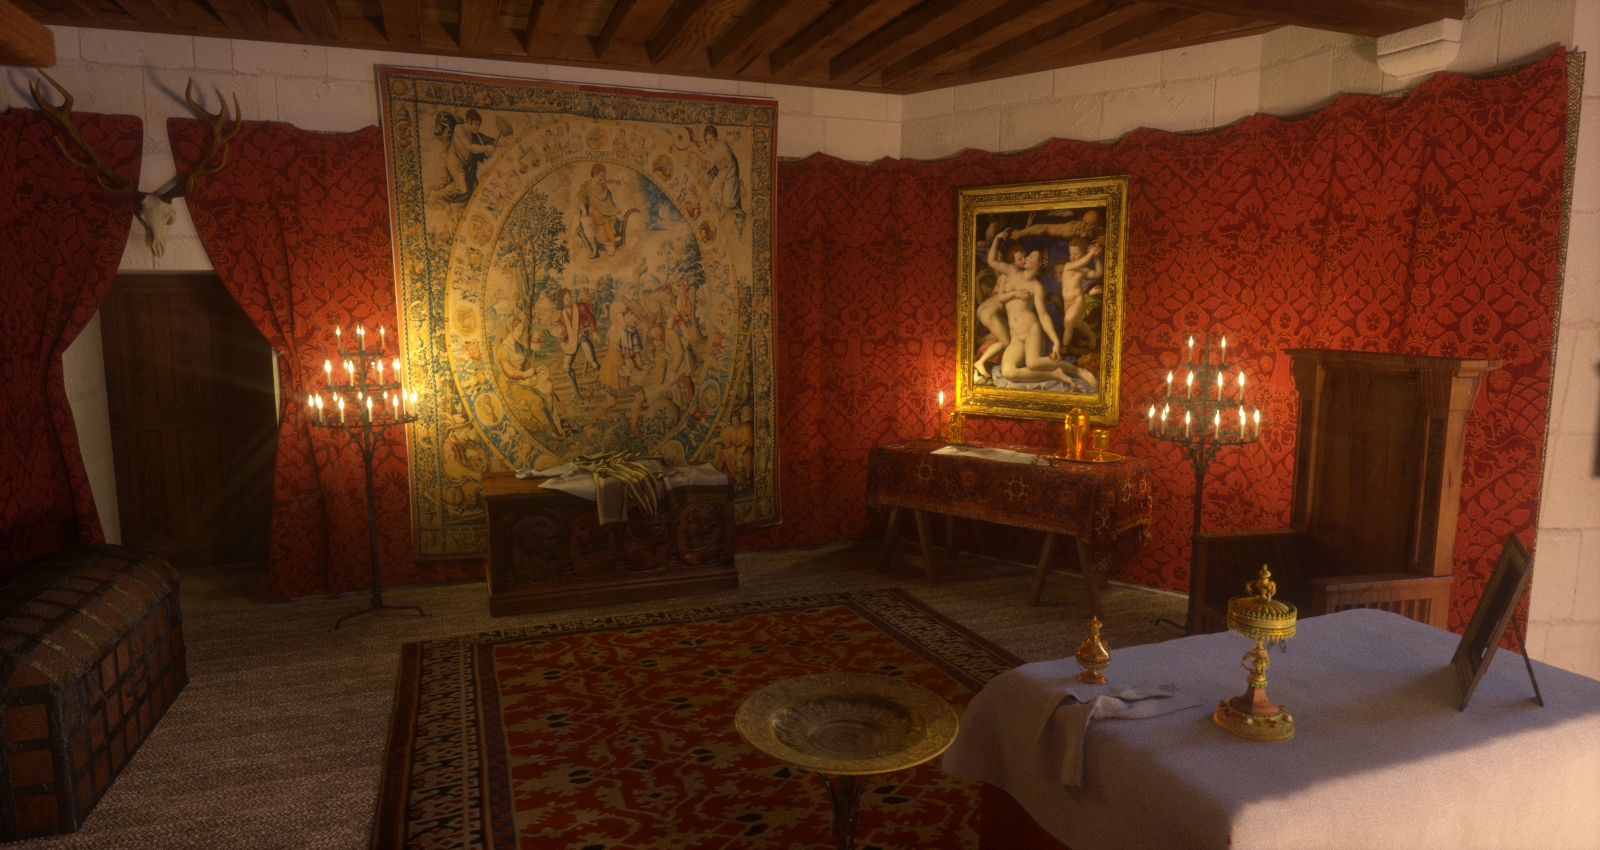 Chateau de chambord medievalworlds for Garderobe chateau